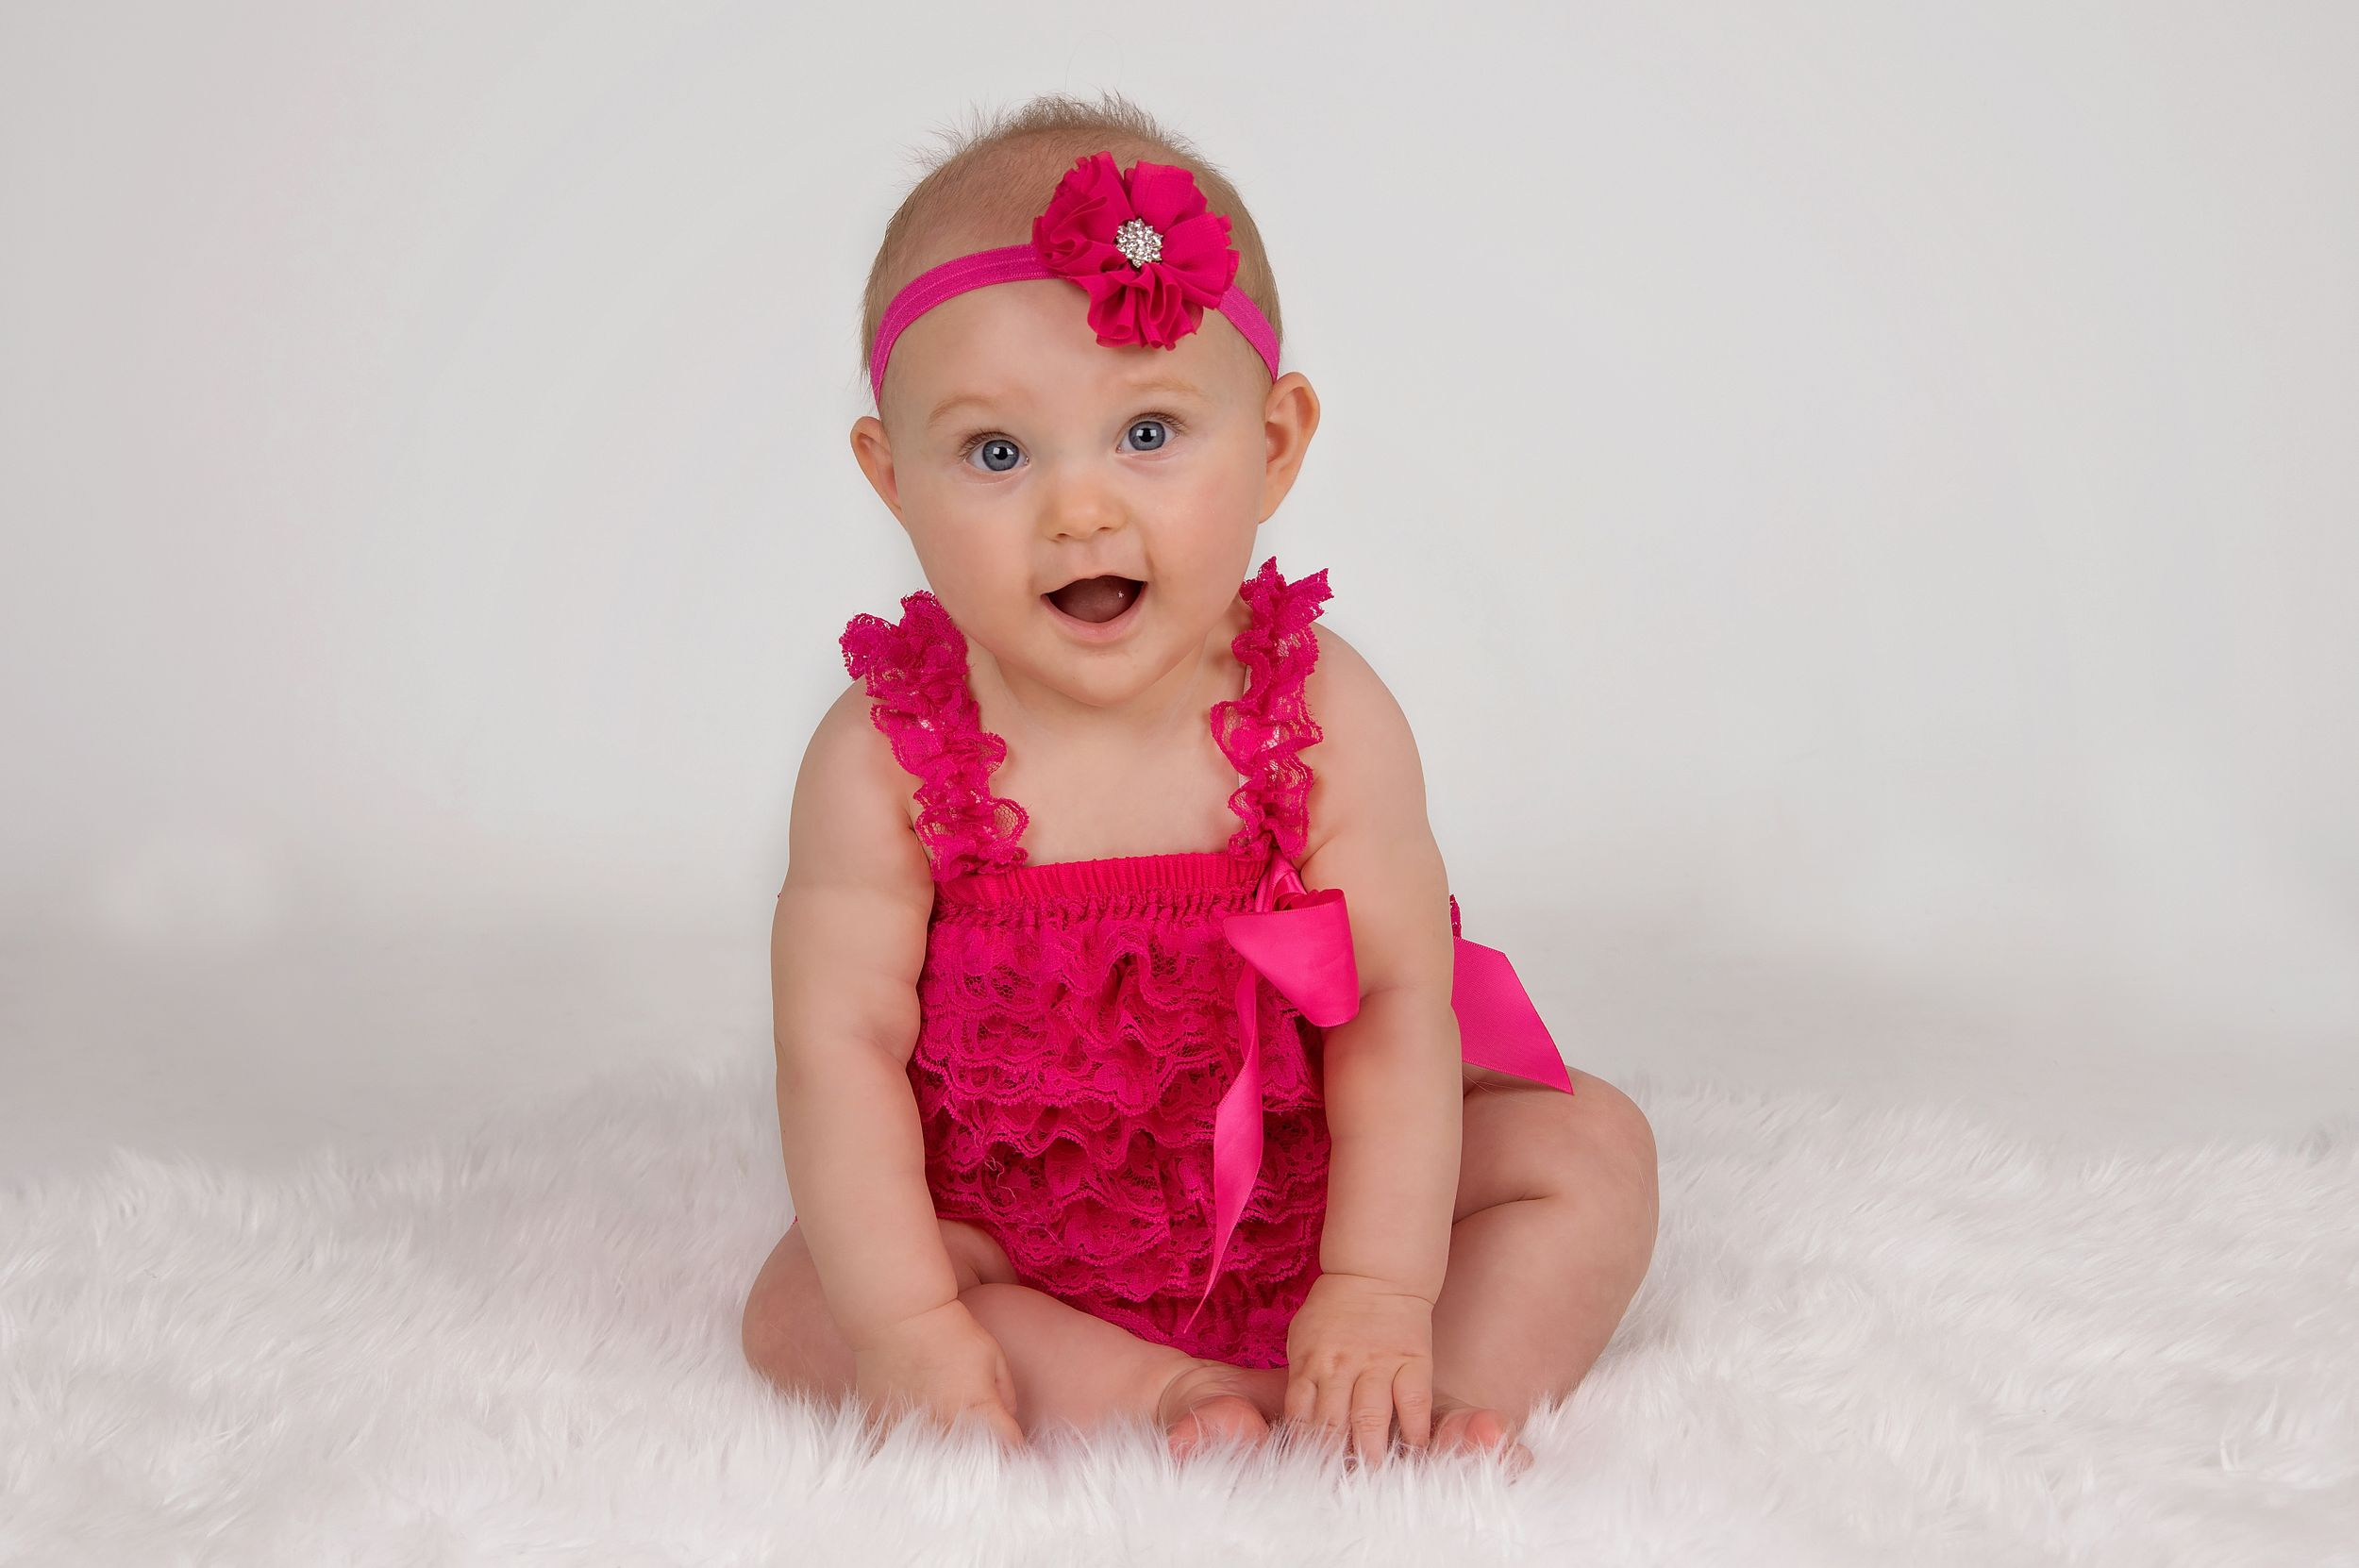 baby wearing pink sitting up posing for camera